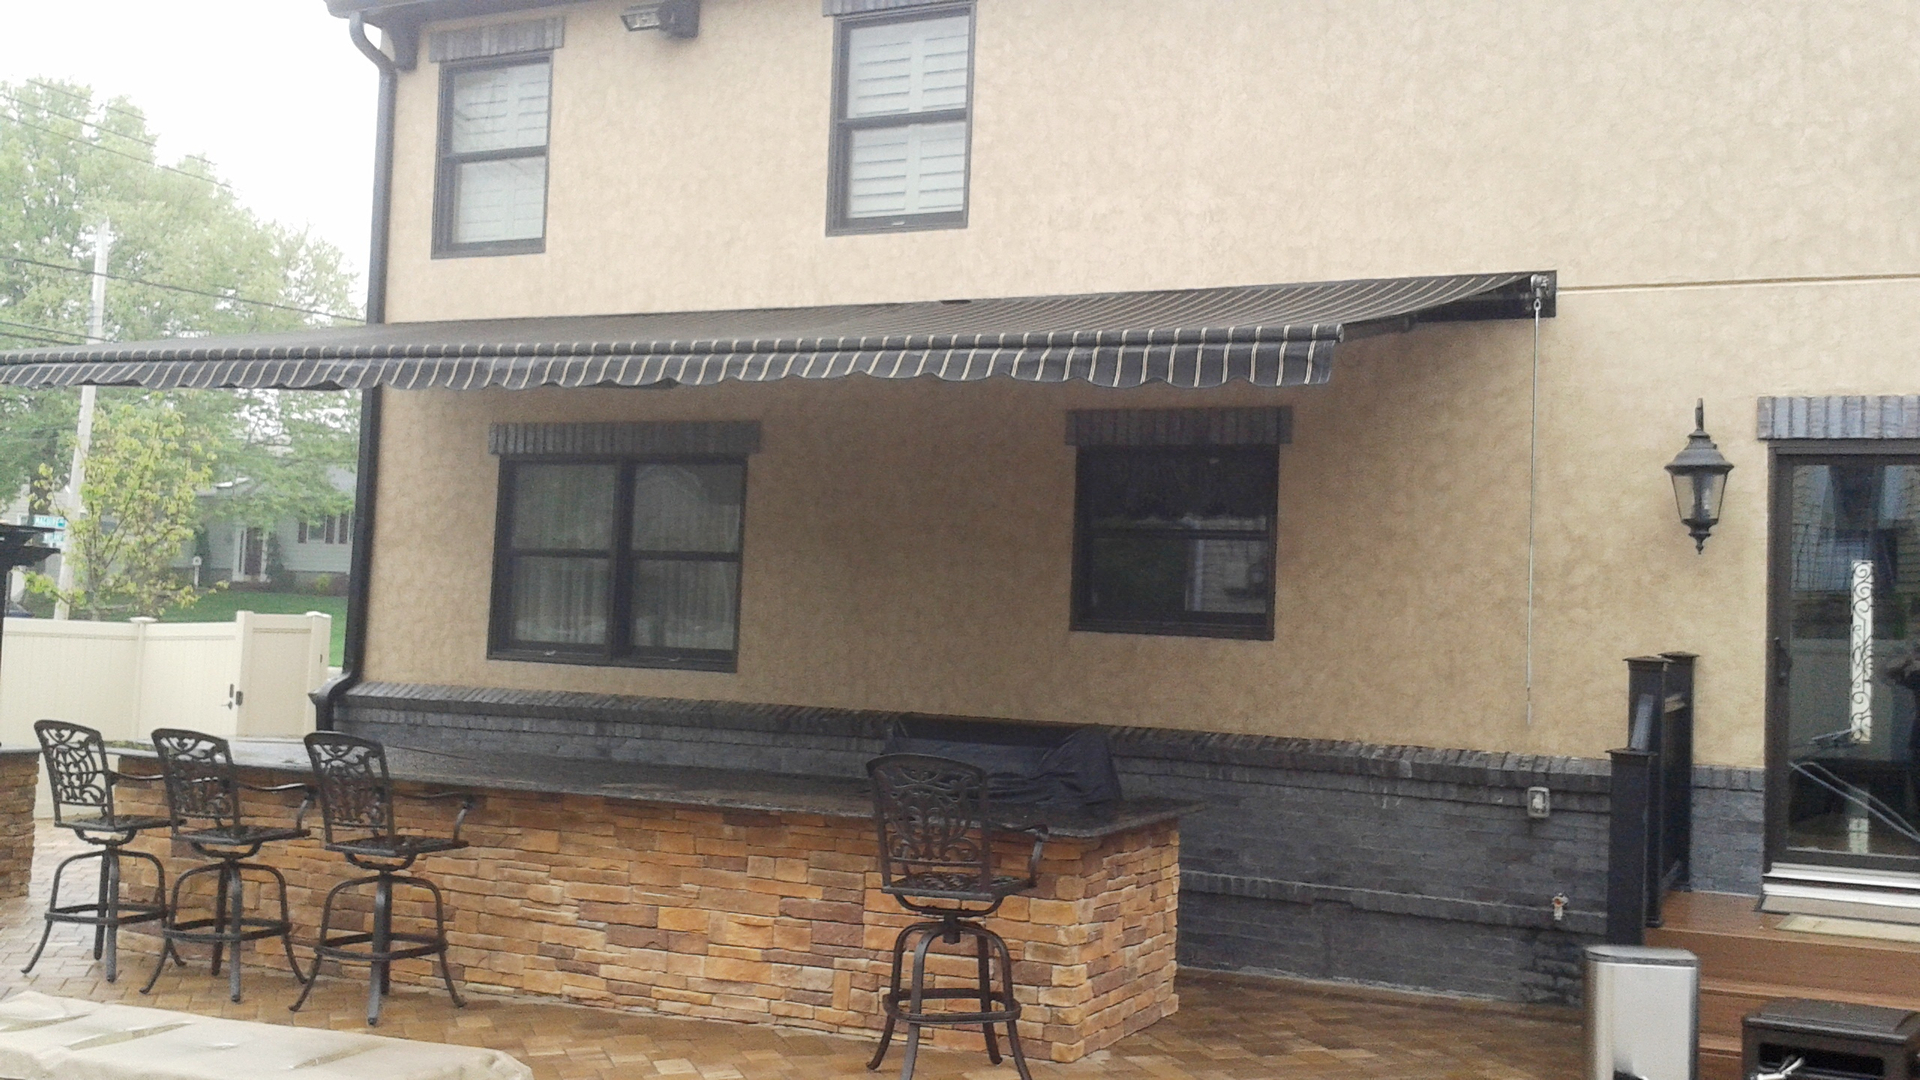 Retractable Awning Custom Canopy STATEN ISLAND AWNING